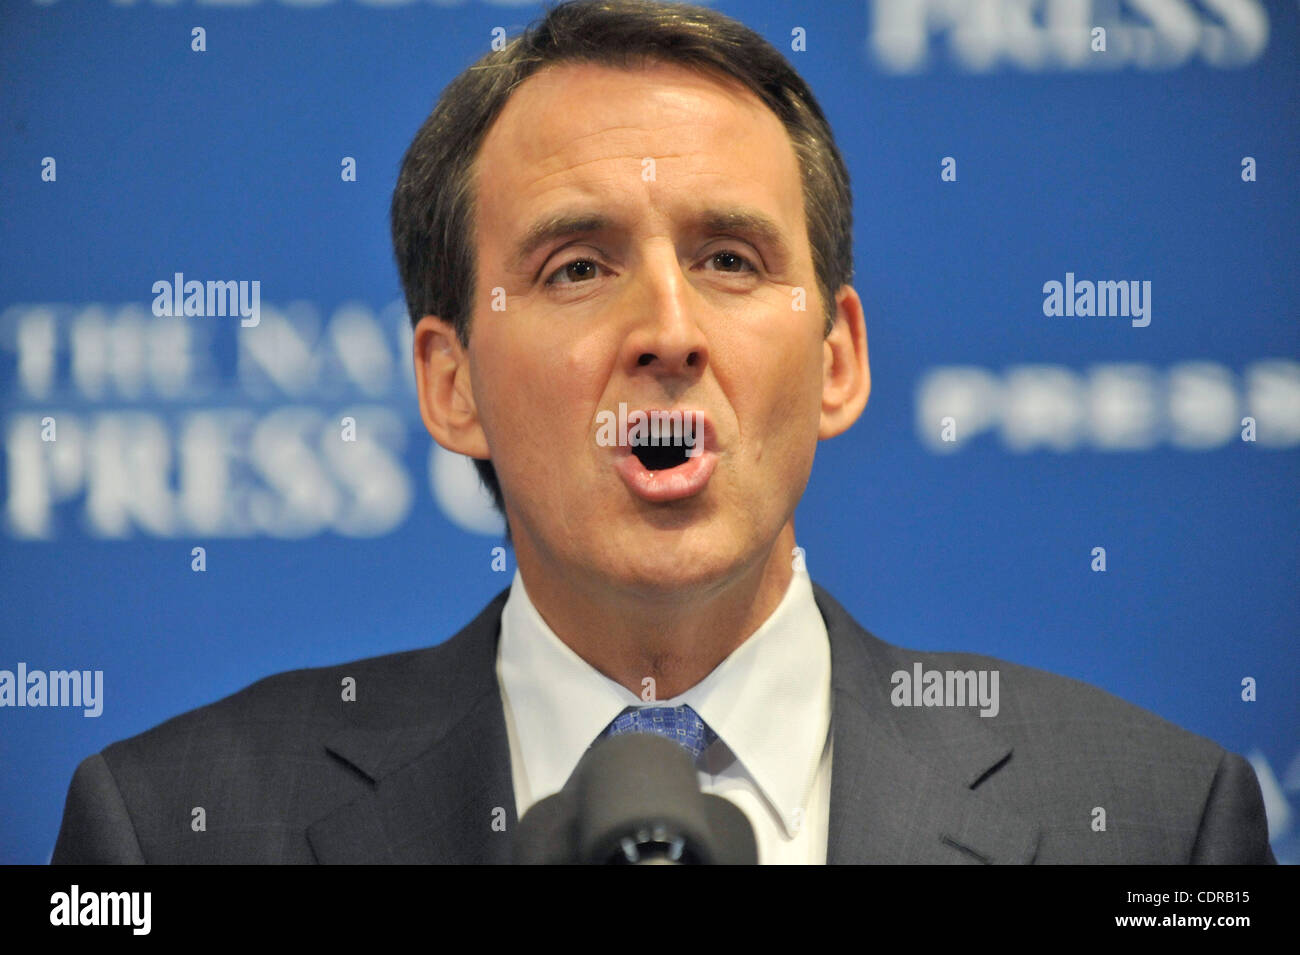 FILE PHOTO - Former Minnesota Governor TIM PAWLENTY opened his bid for the Republican presidential nomination in - Stock Image